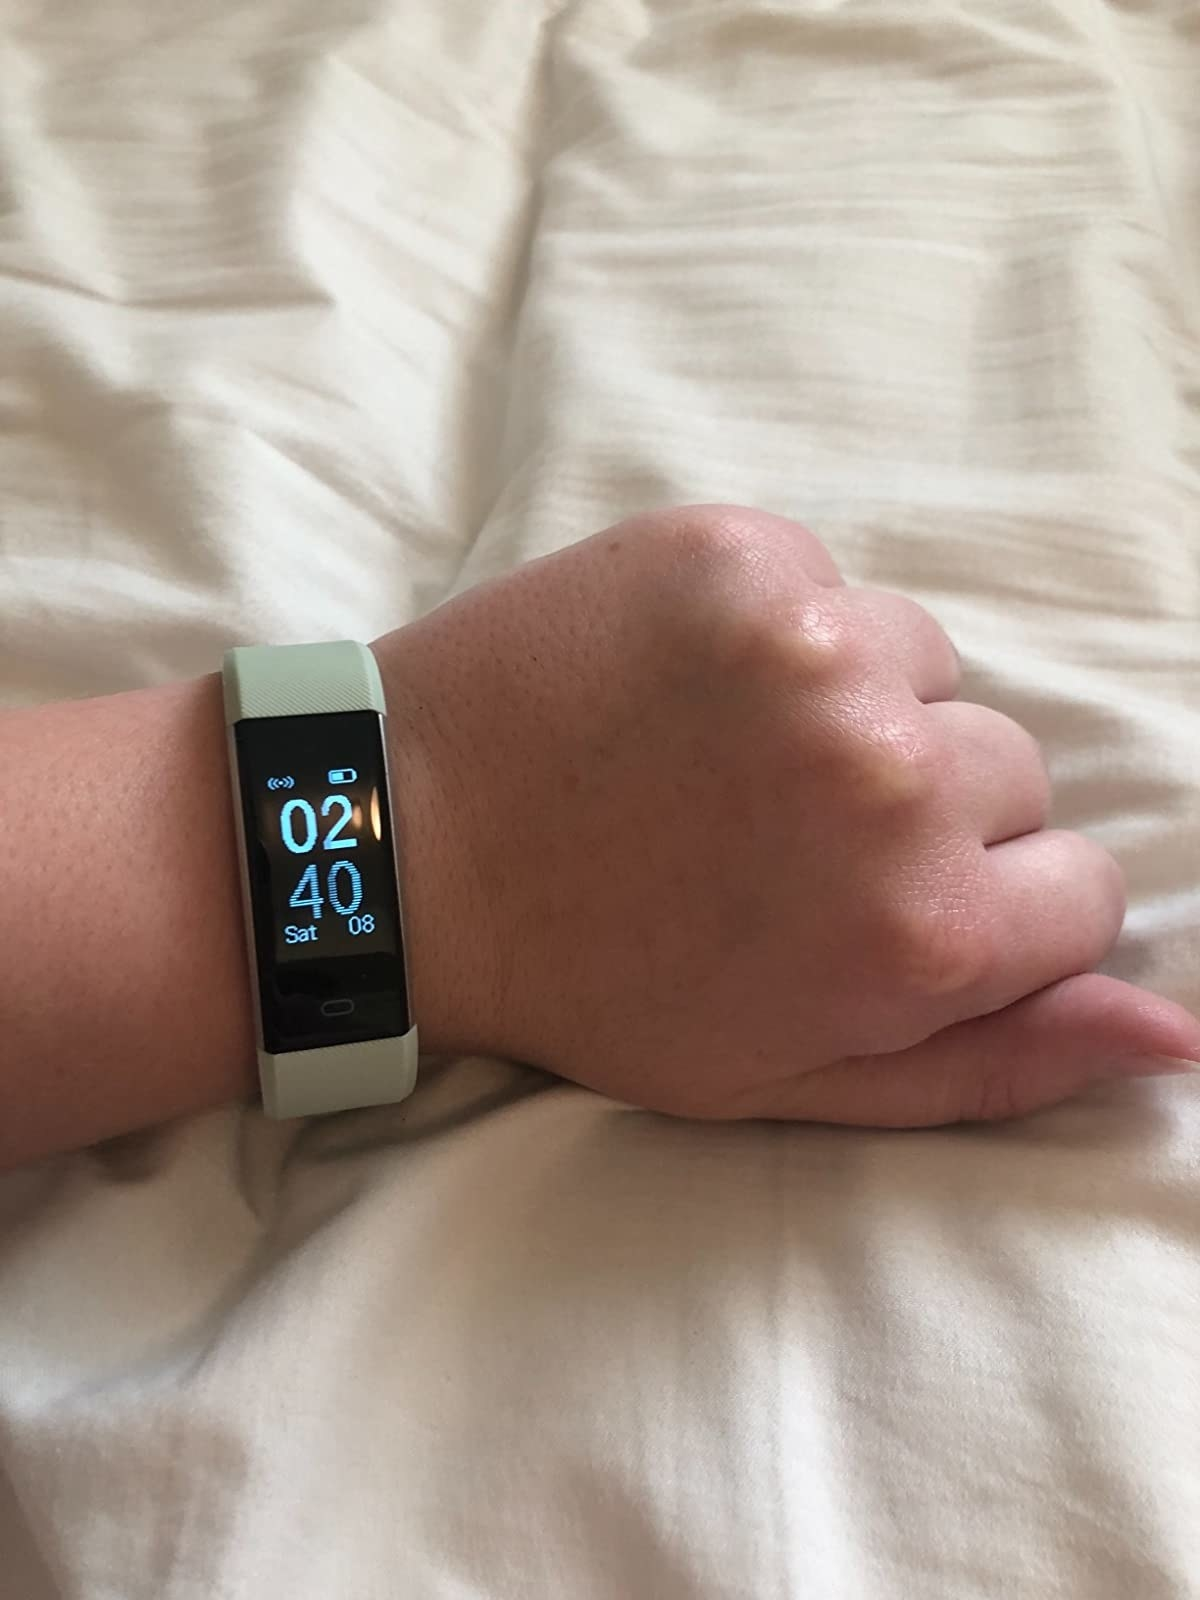 image of the sage letscom fitness tracker on a reviewer's wrist showing the time as 2:40